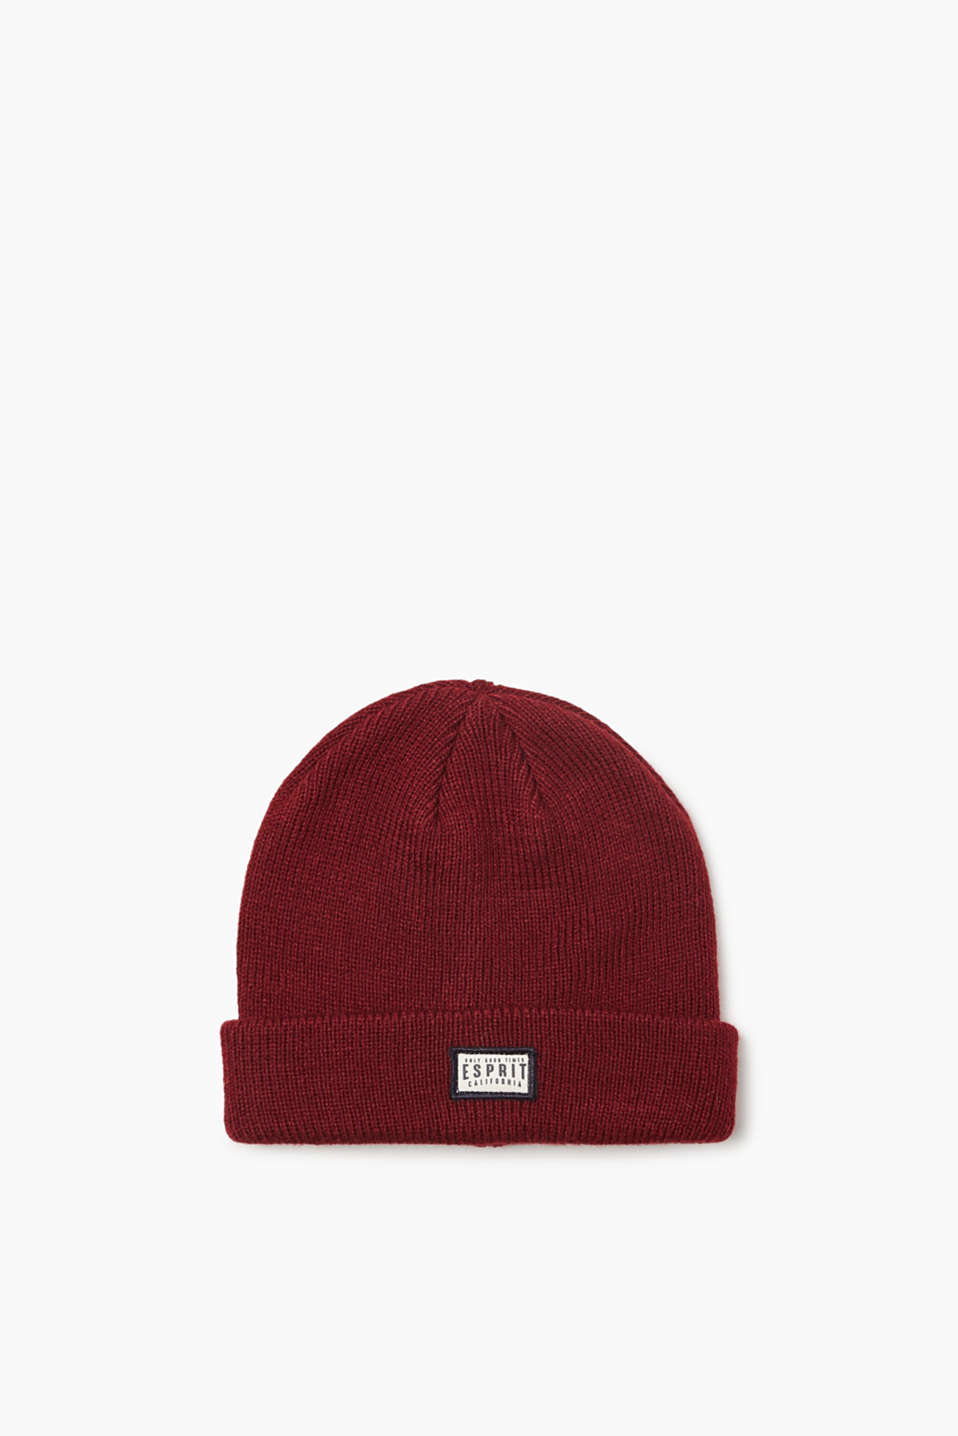 Esprit - Knitted beanie with a logo badge